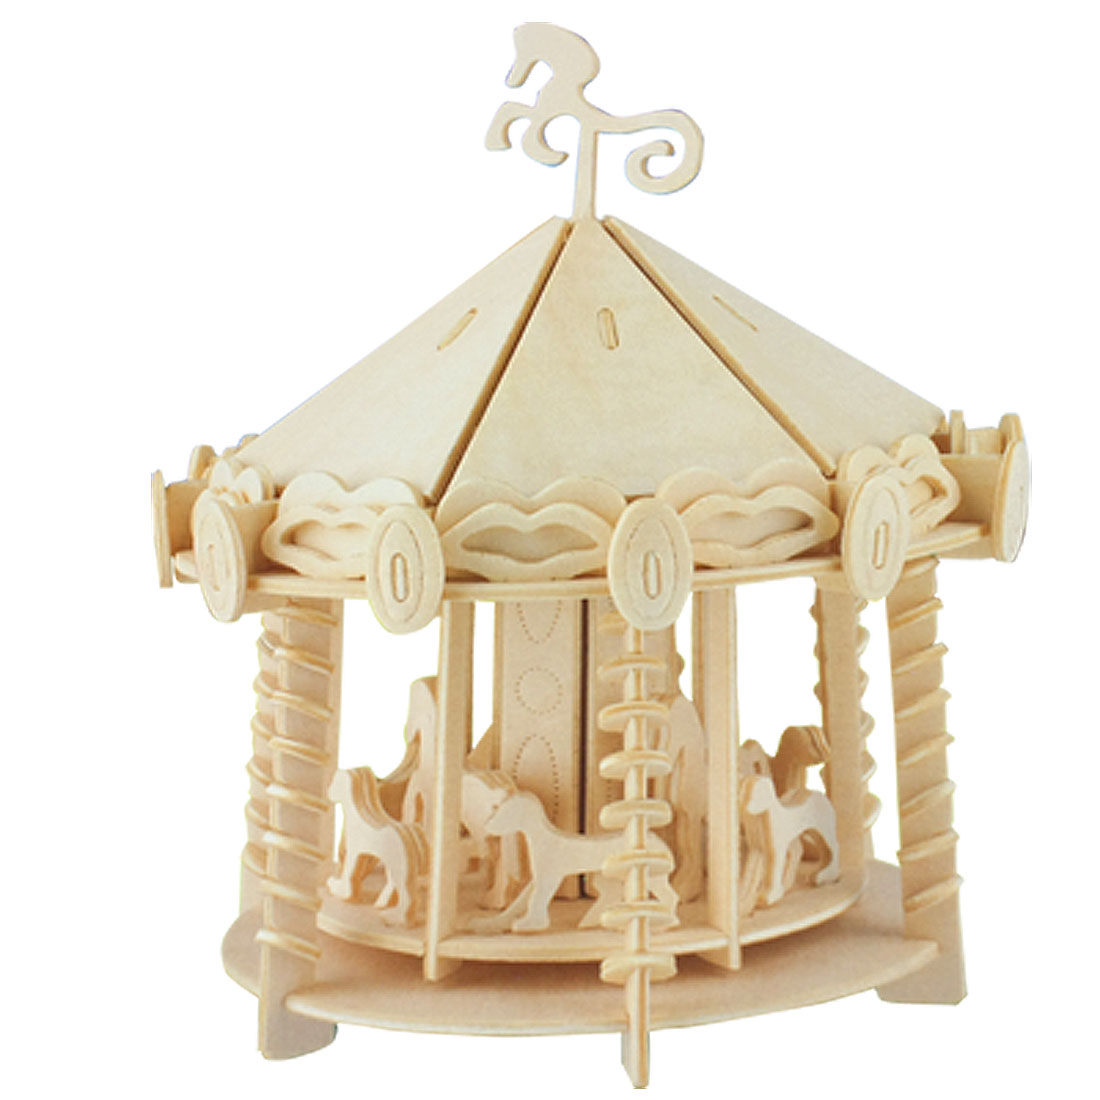 Carousel Model Puzzled 3D DIY Assemble Wooden Kit Gift for Child